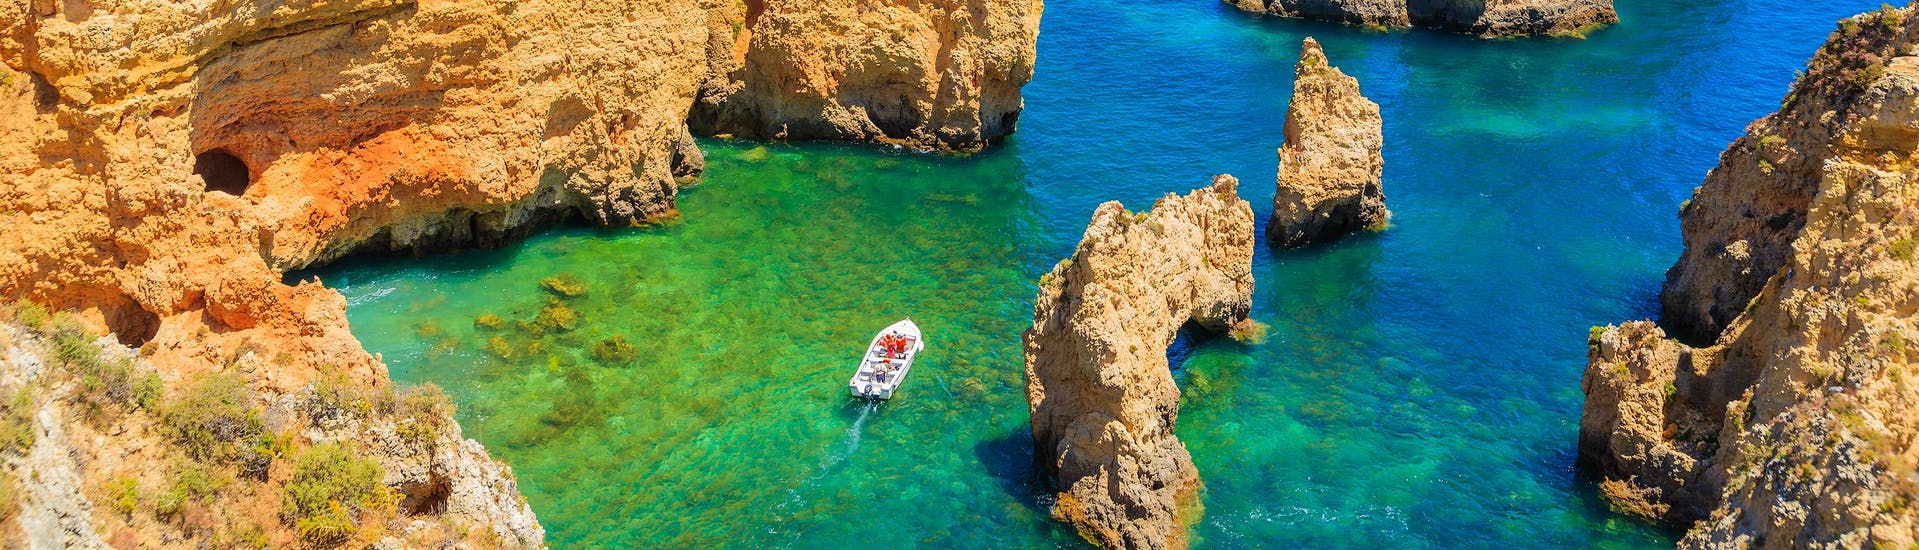 A view of the famous rocks of Ponta da Piedade in Portugal with a number of boat trip operators navigating their boats along the coast.